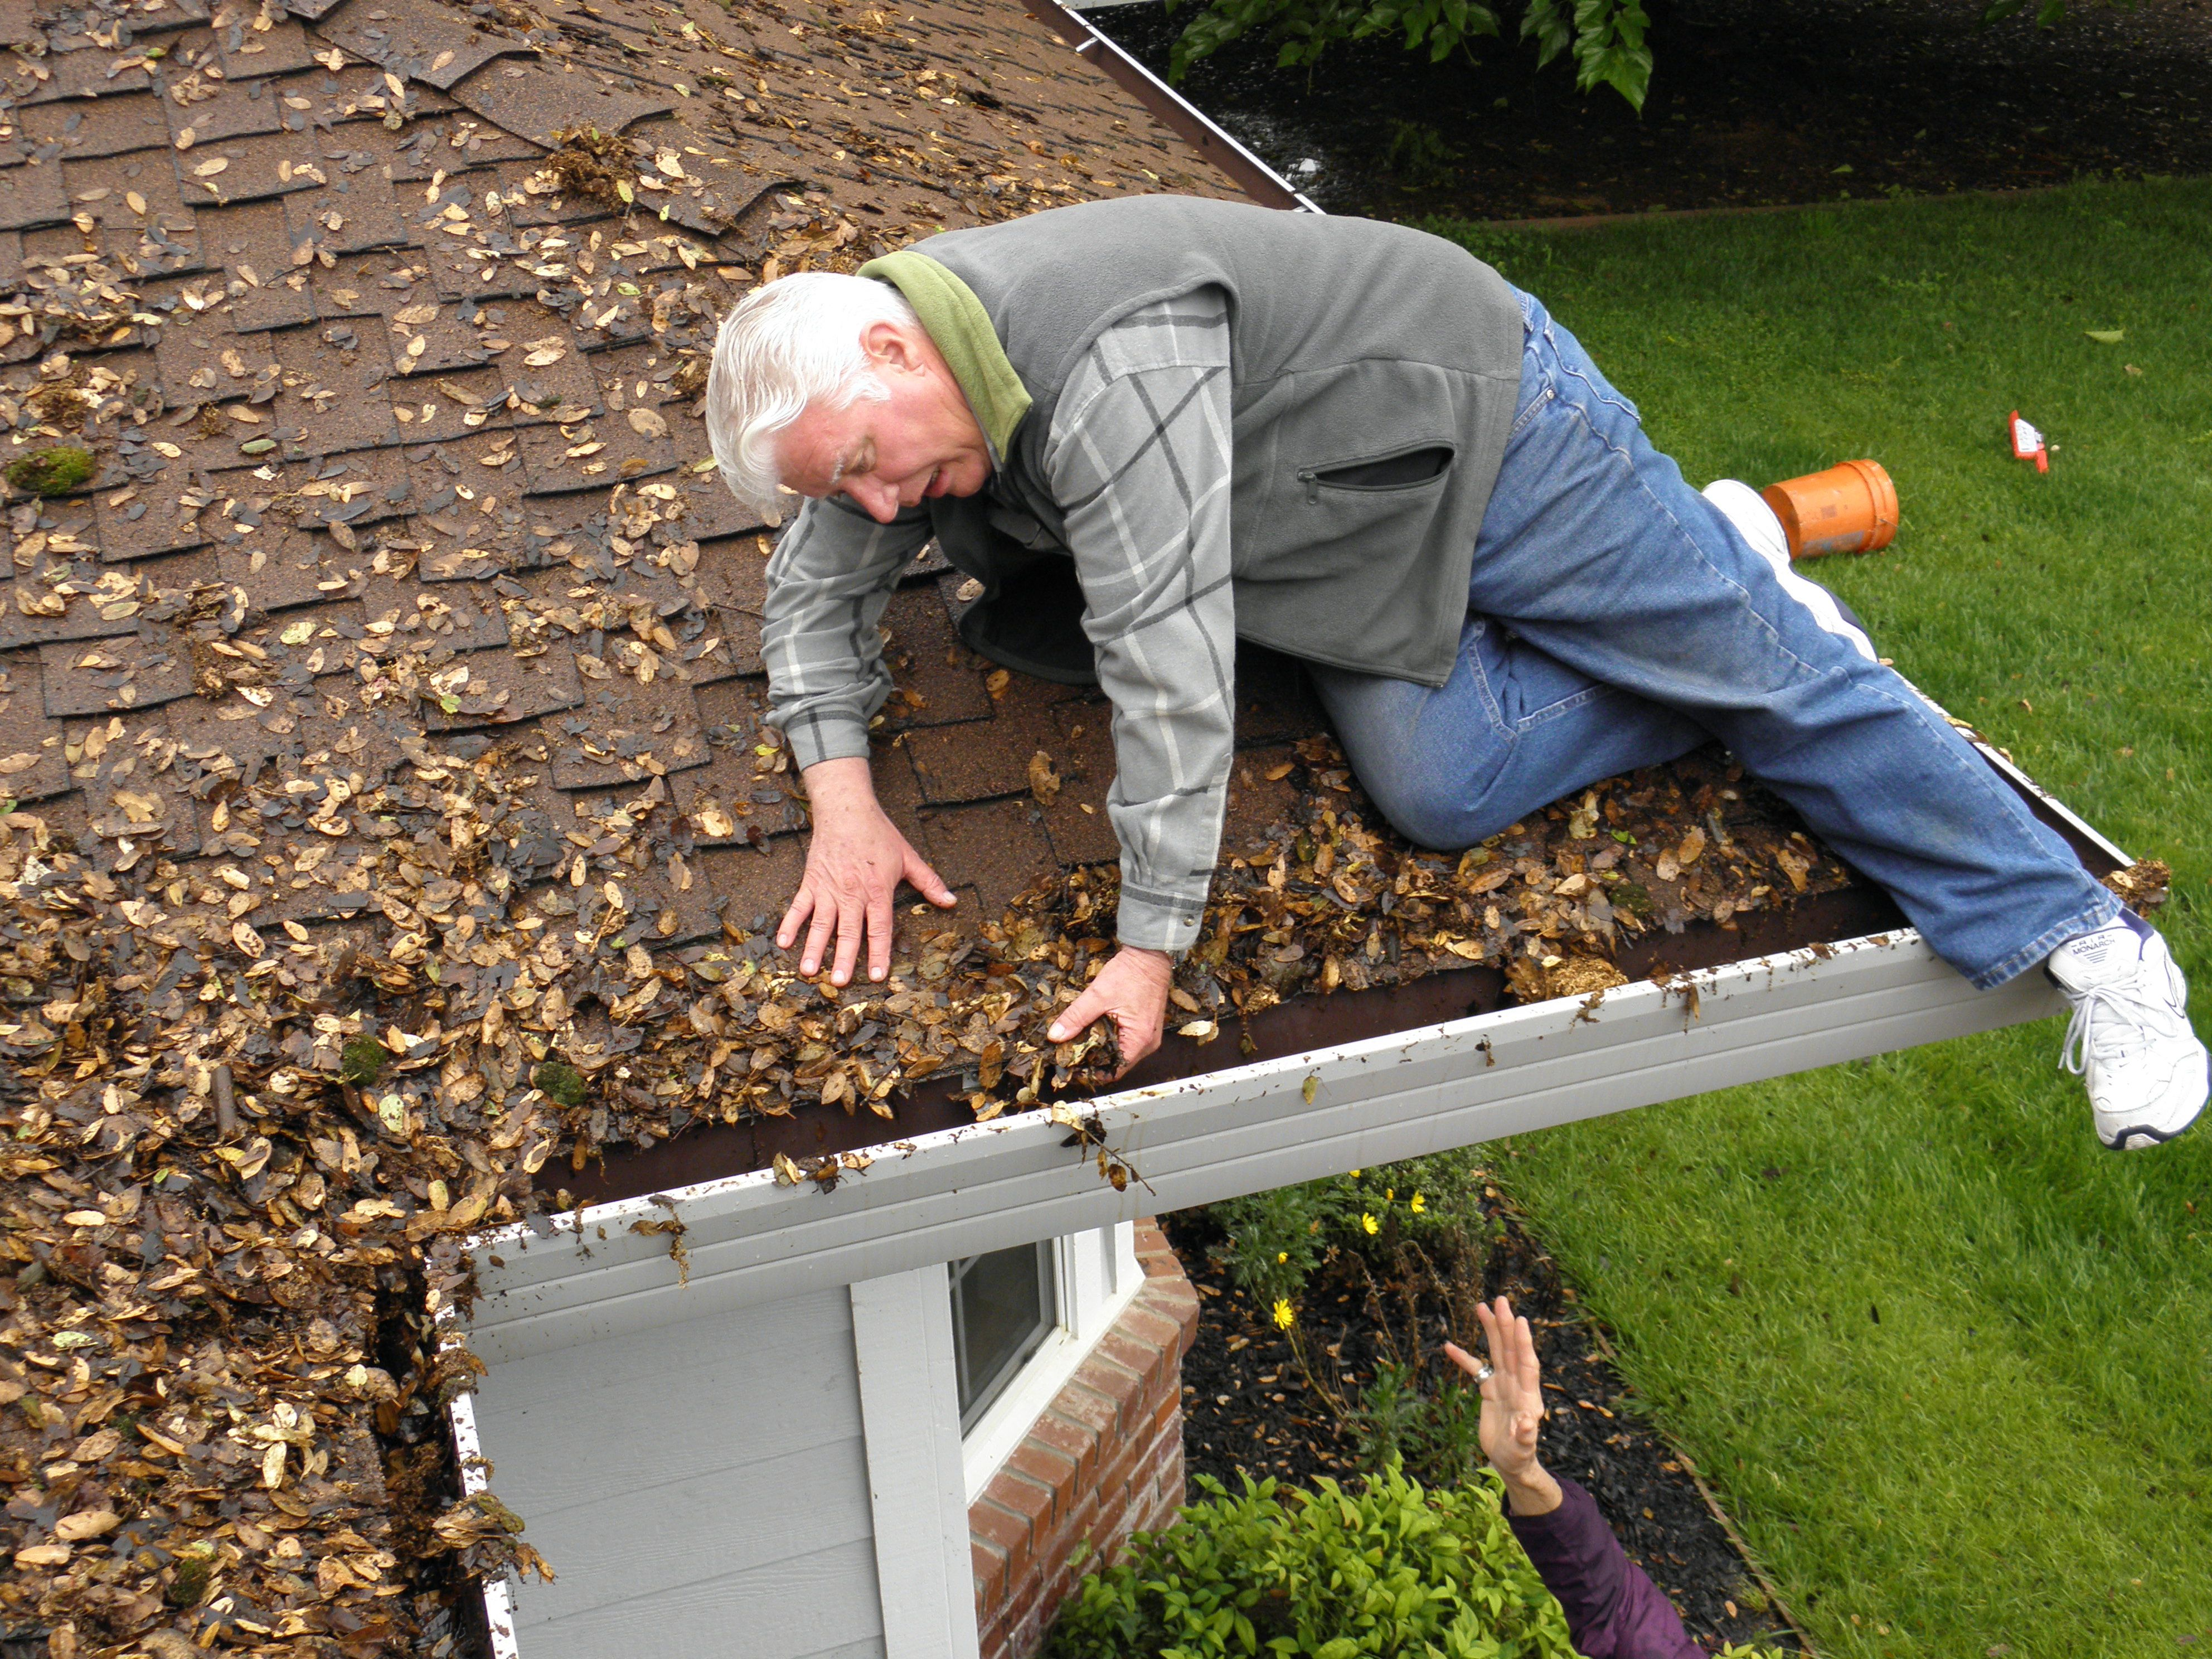 Gutter Cleaning Service Indianapolis Indiana Stroitelstvo